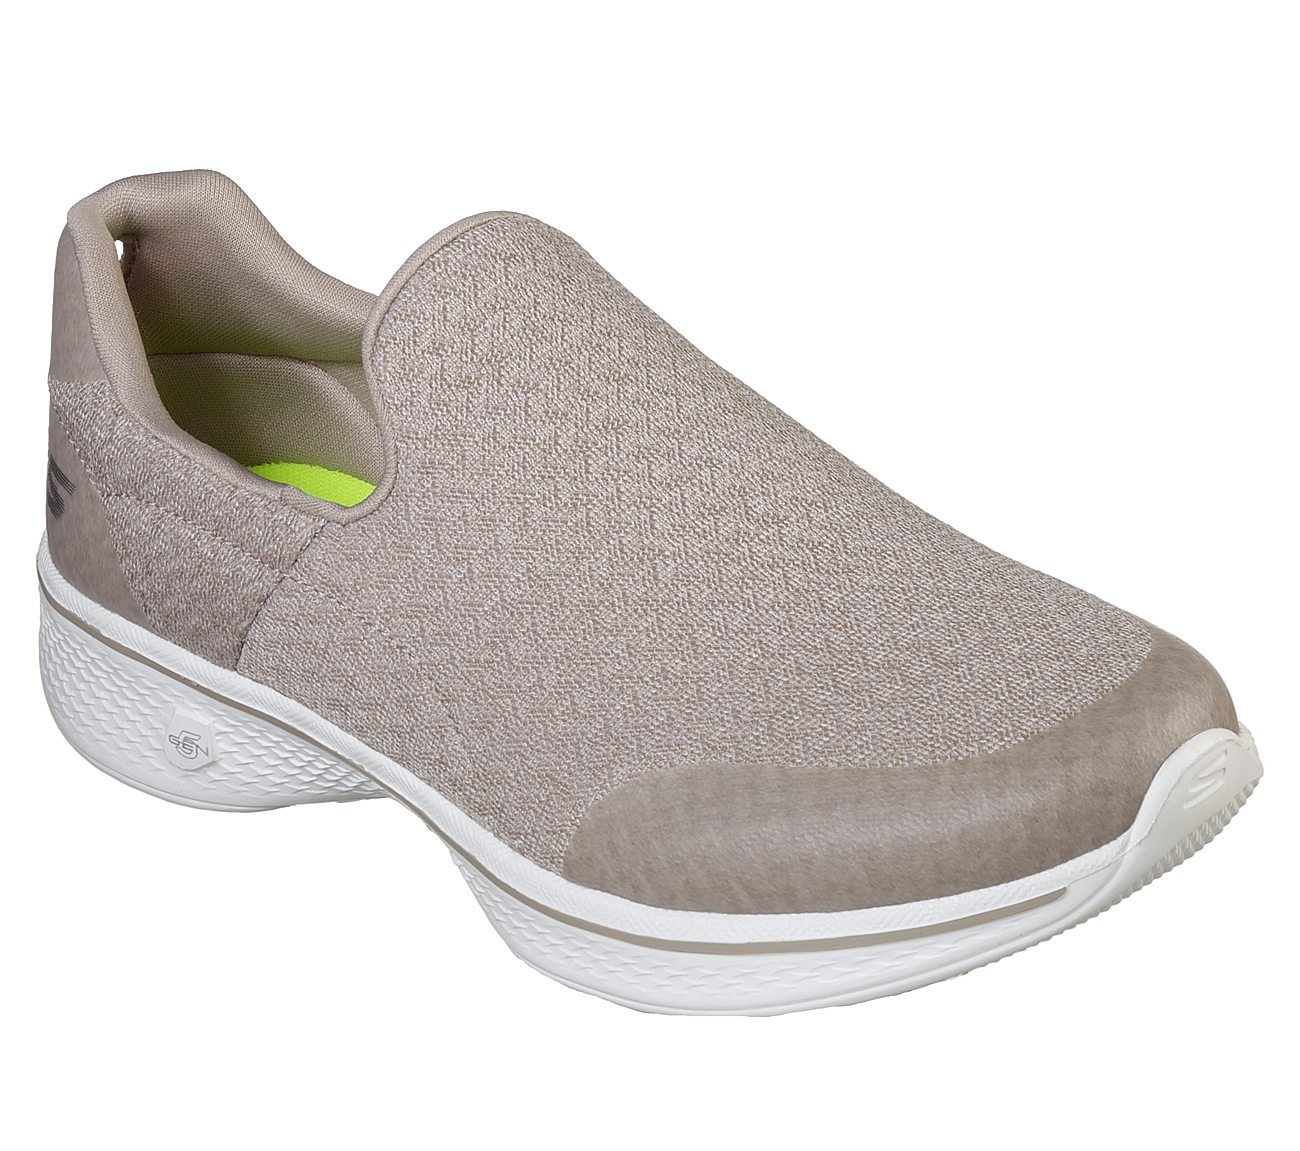 Skechers Diffuse Taupe 14937-TPE Size 8.5